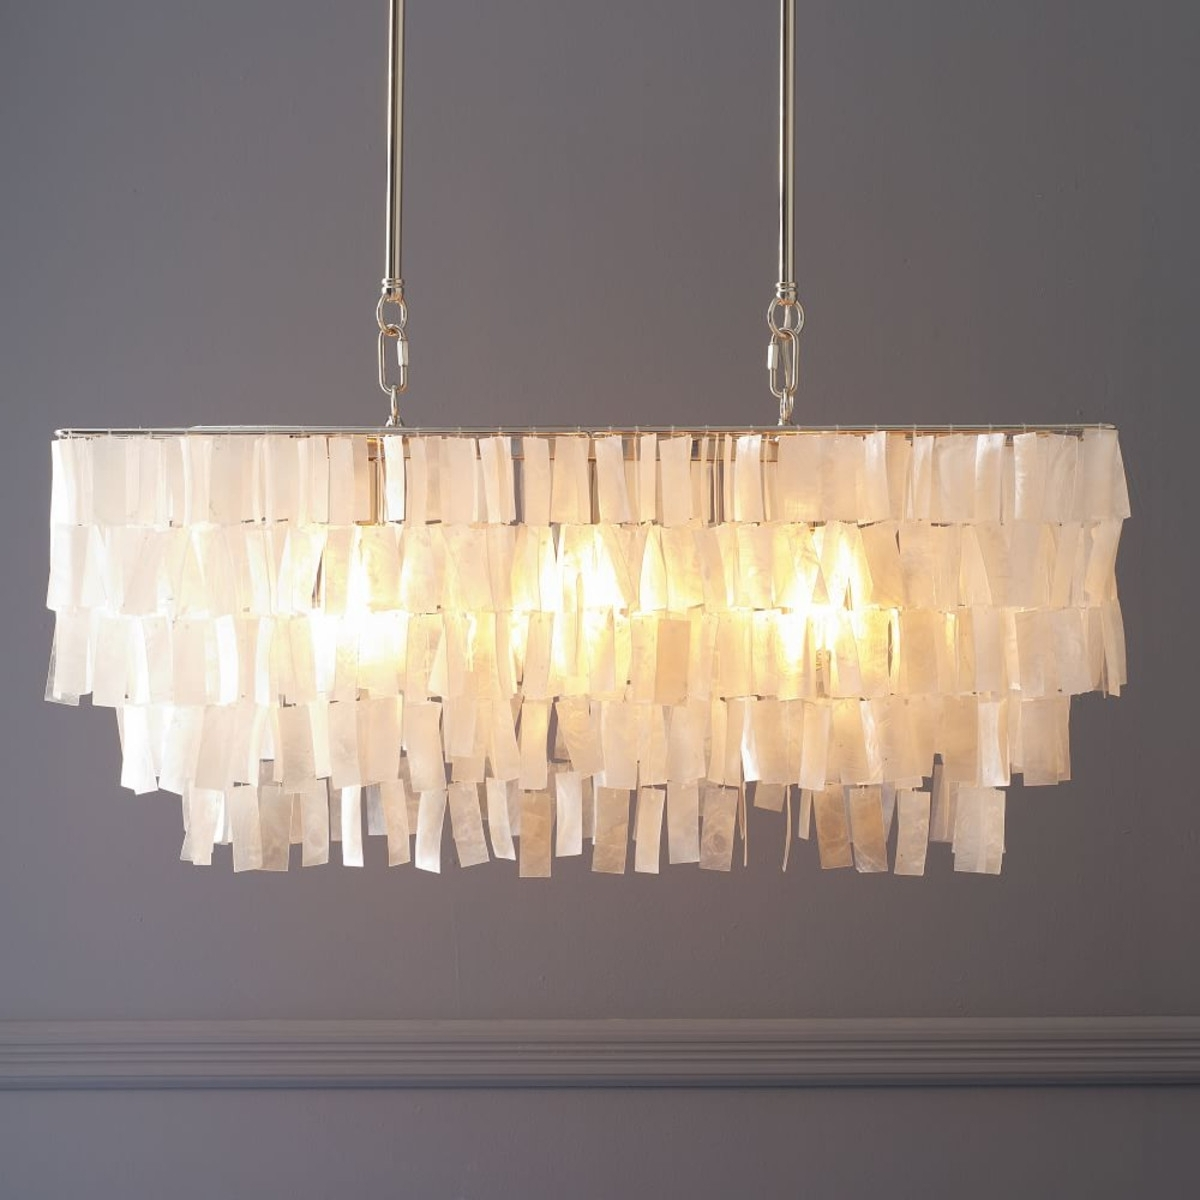 Newest Long Hanging Chandeliers Pertaining To Large Rectangle Hanging Capiz Chandelier – White (View 15 of 20)